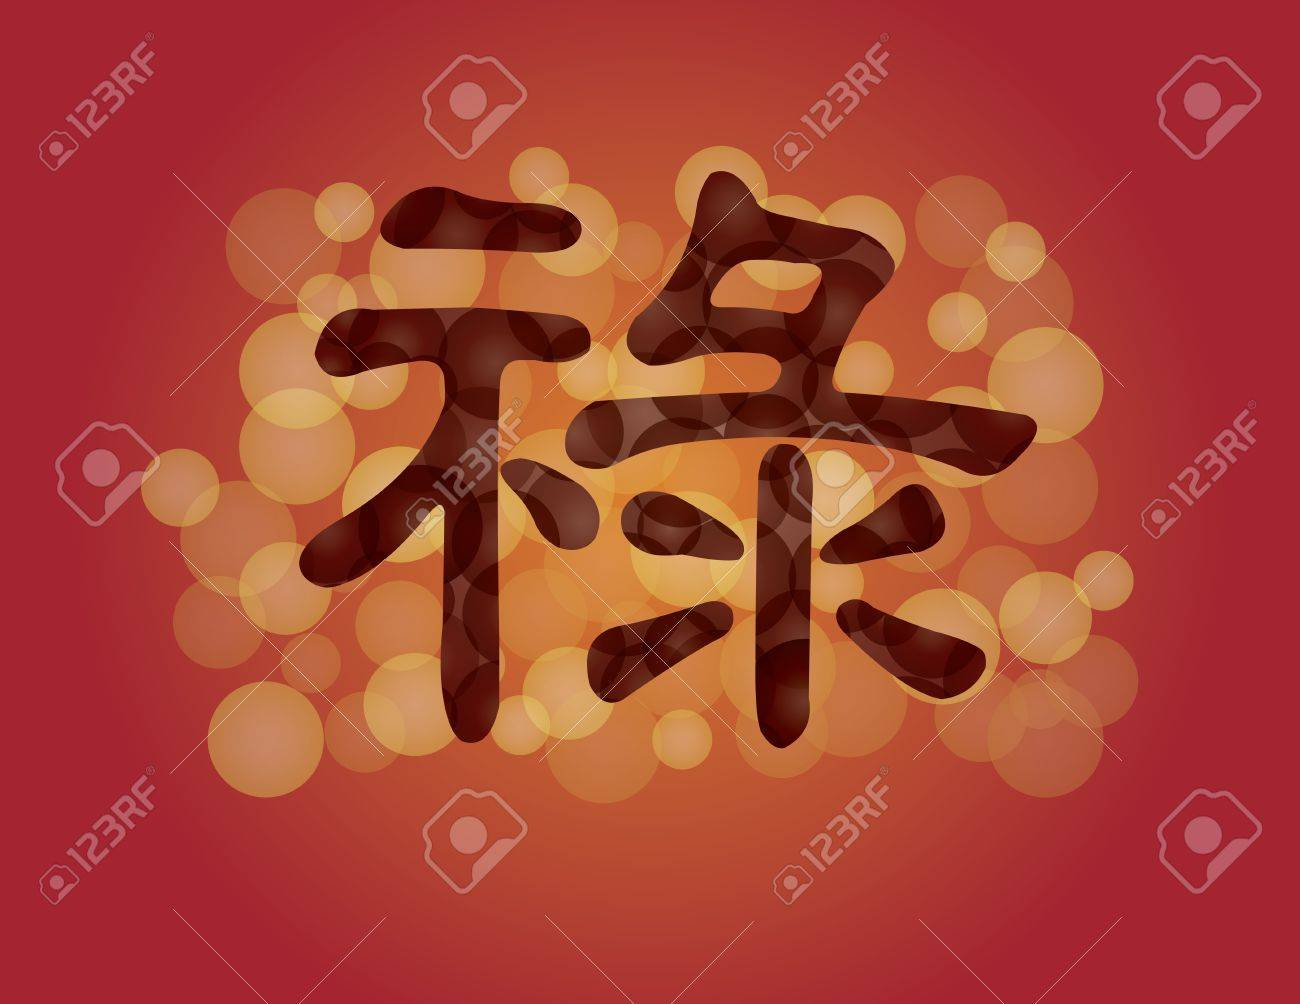 Chinese Prosperity Success Text Symbol With Eternity Circle Pattern